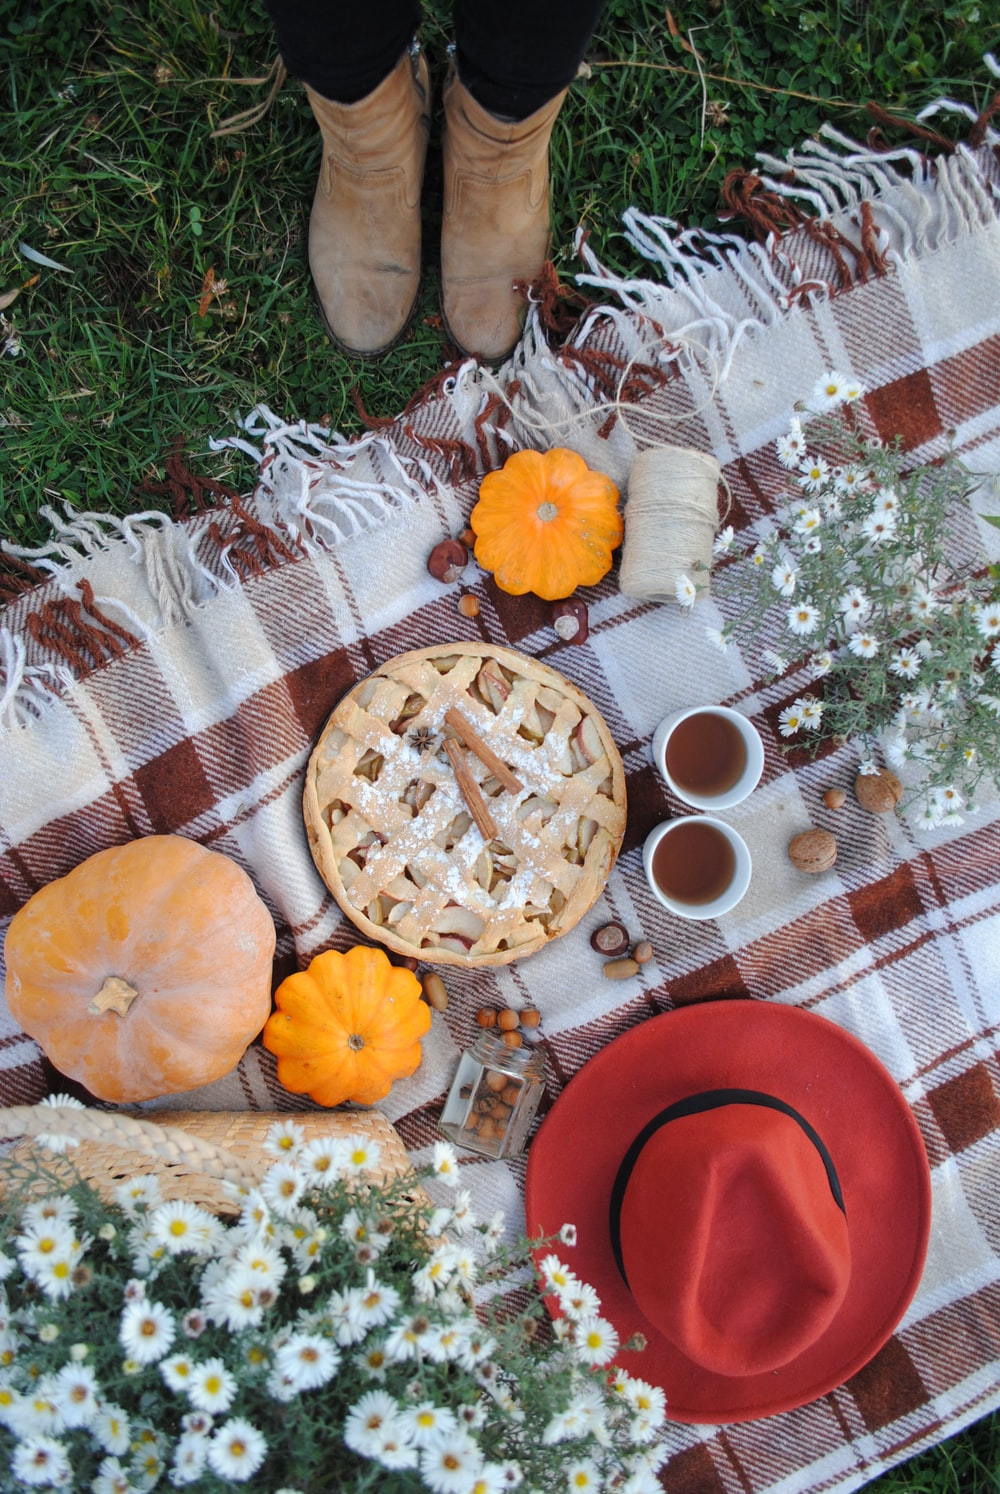 pie beside pumpkins, drinks, and hat on plaid textile